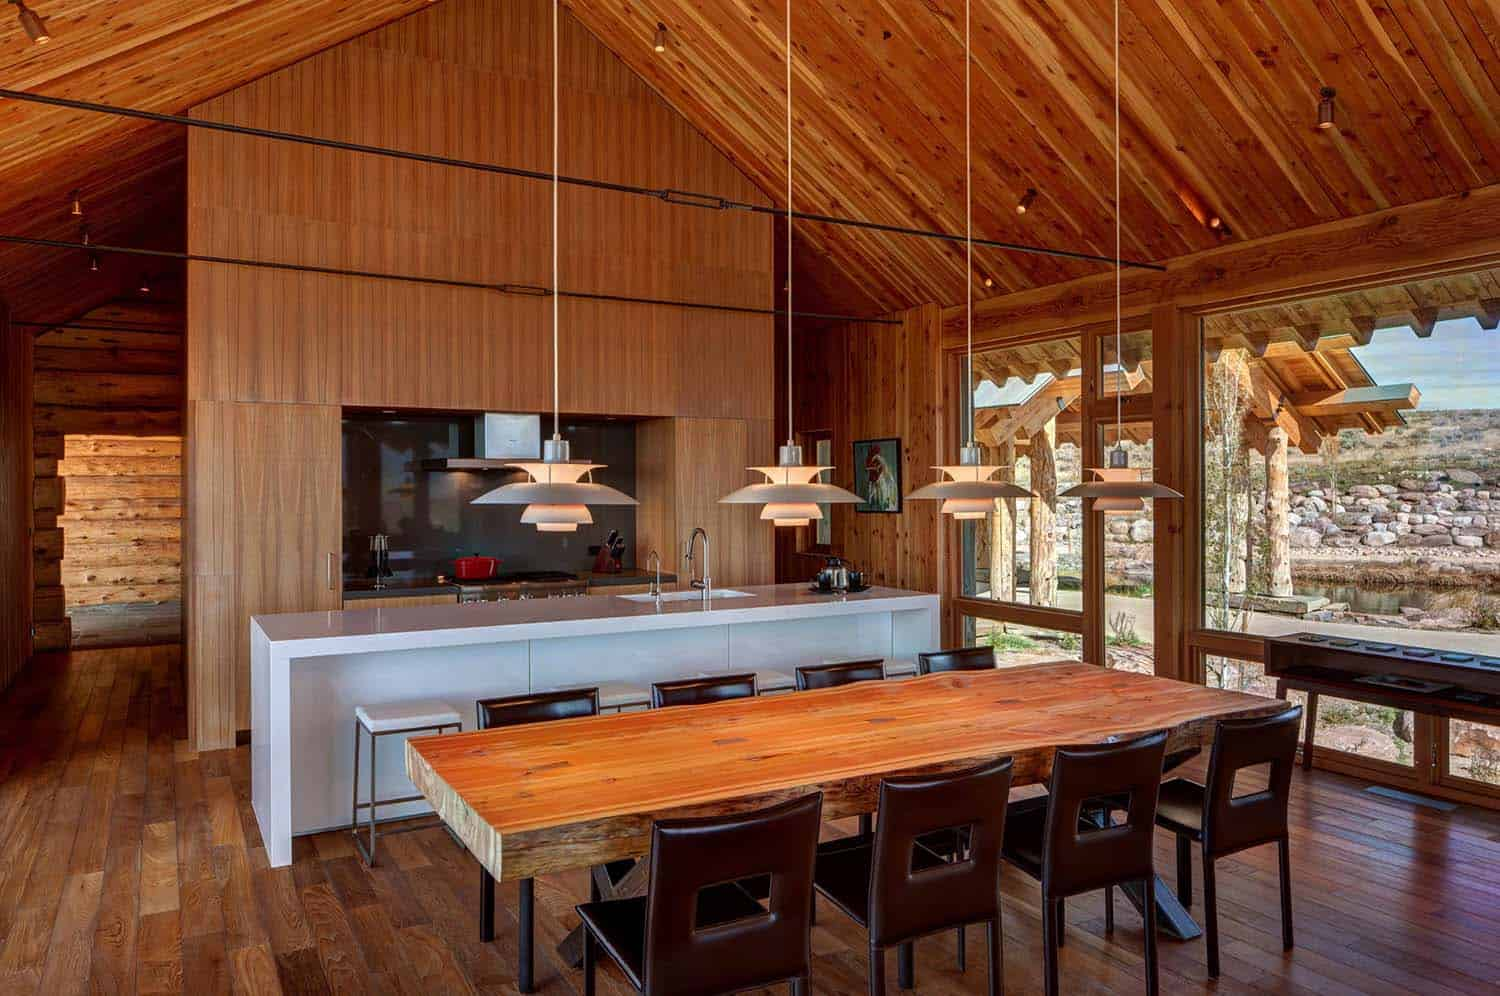 Modern Rustic Log Home-Shubin Donaldson Architects-10-1 Kindesign